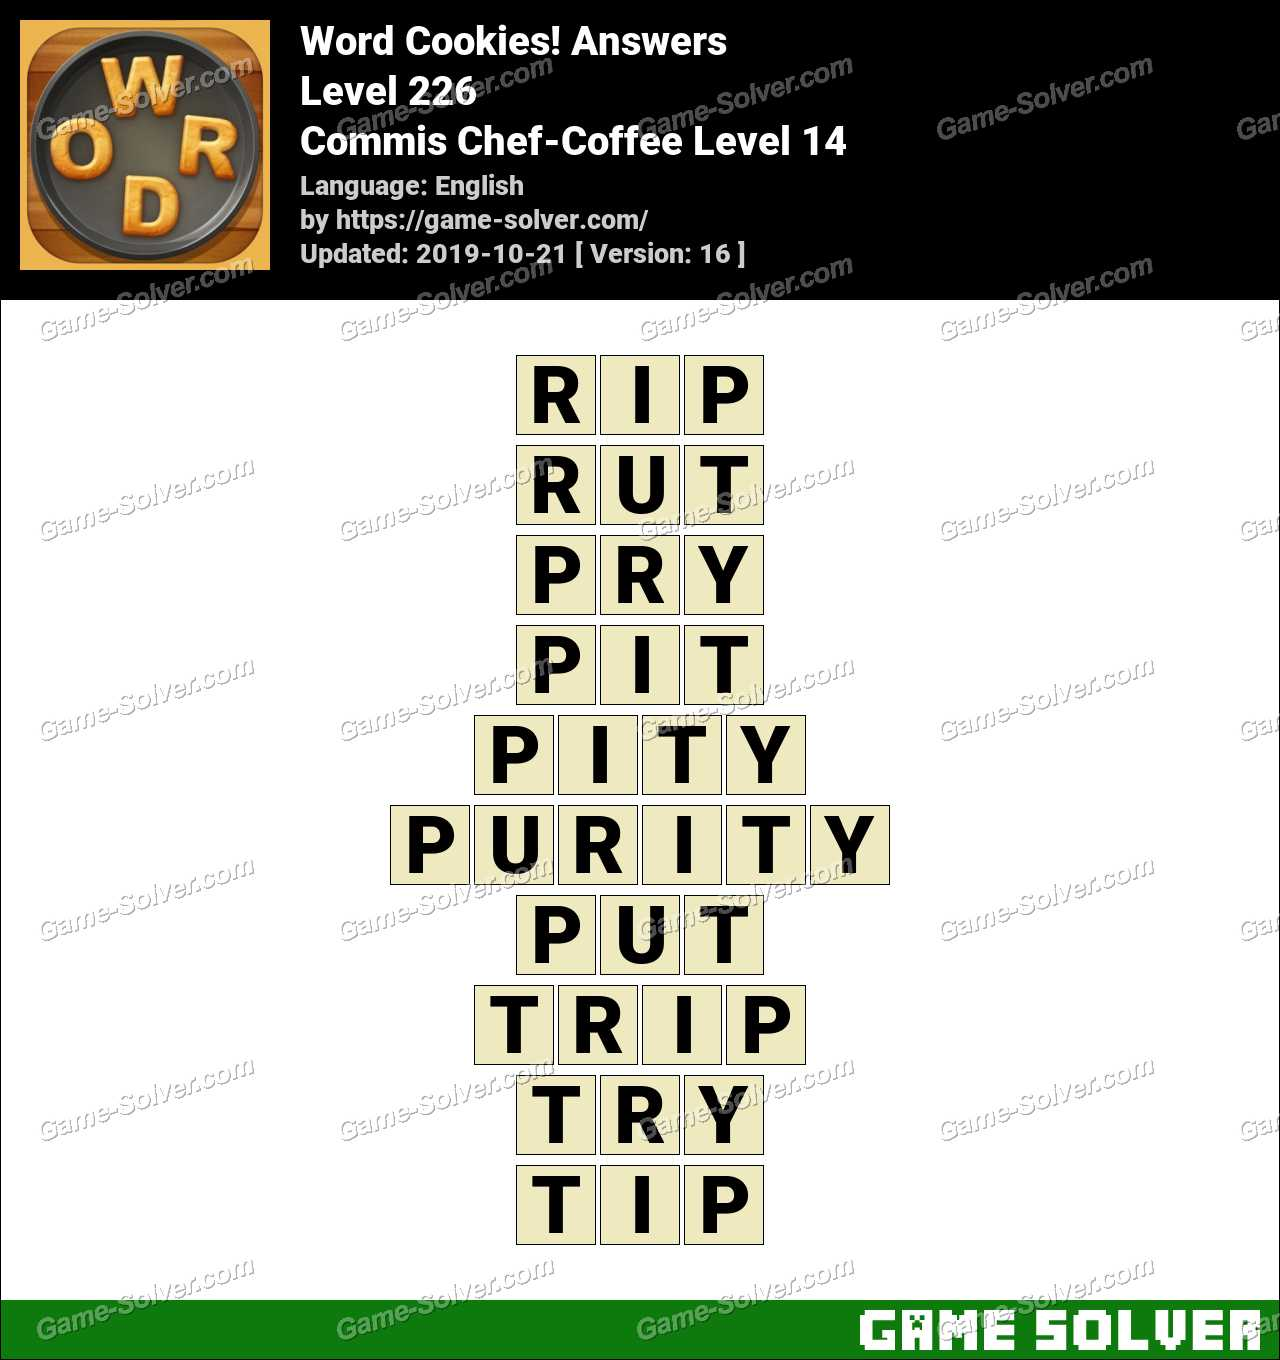 Word Cookies Commis Chef-Coffee Level 14 Answers